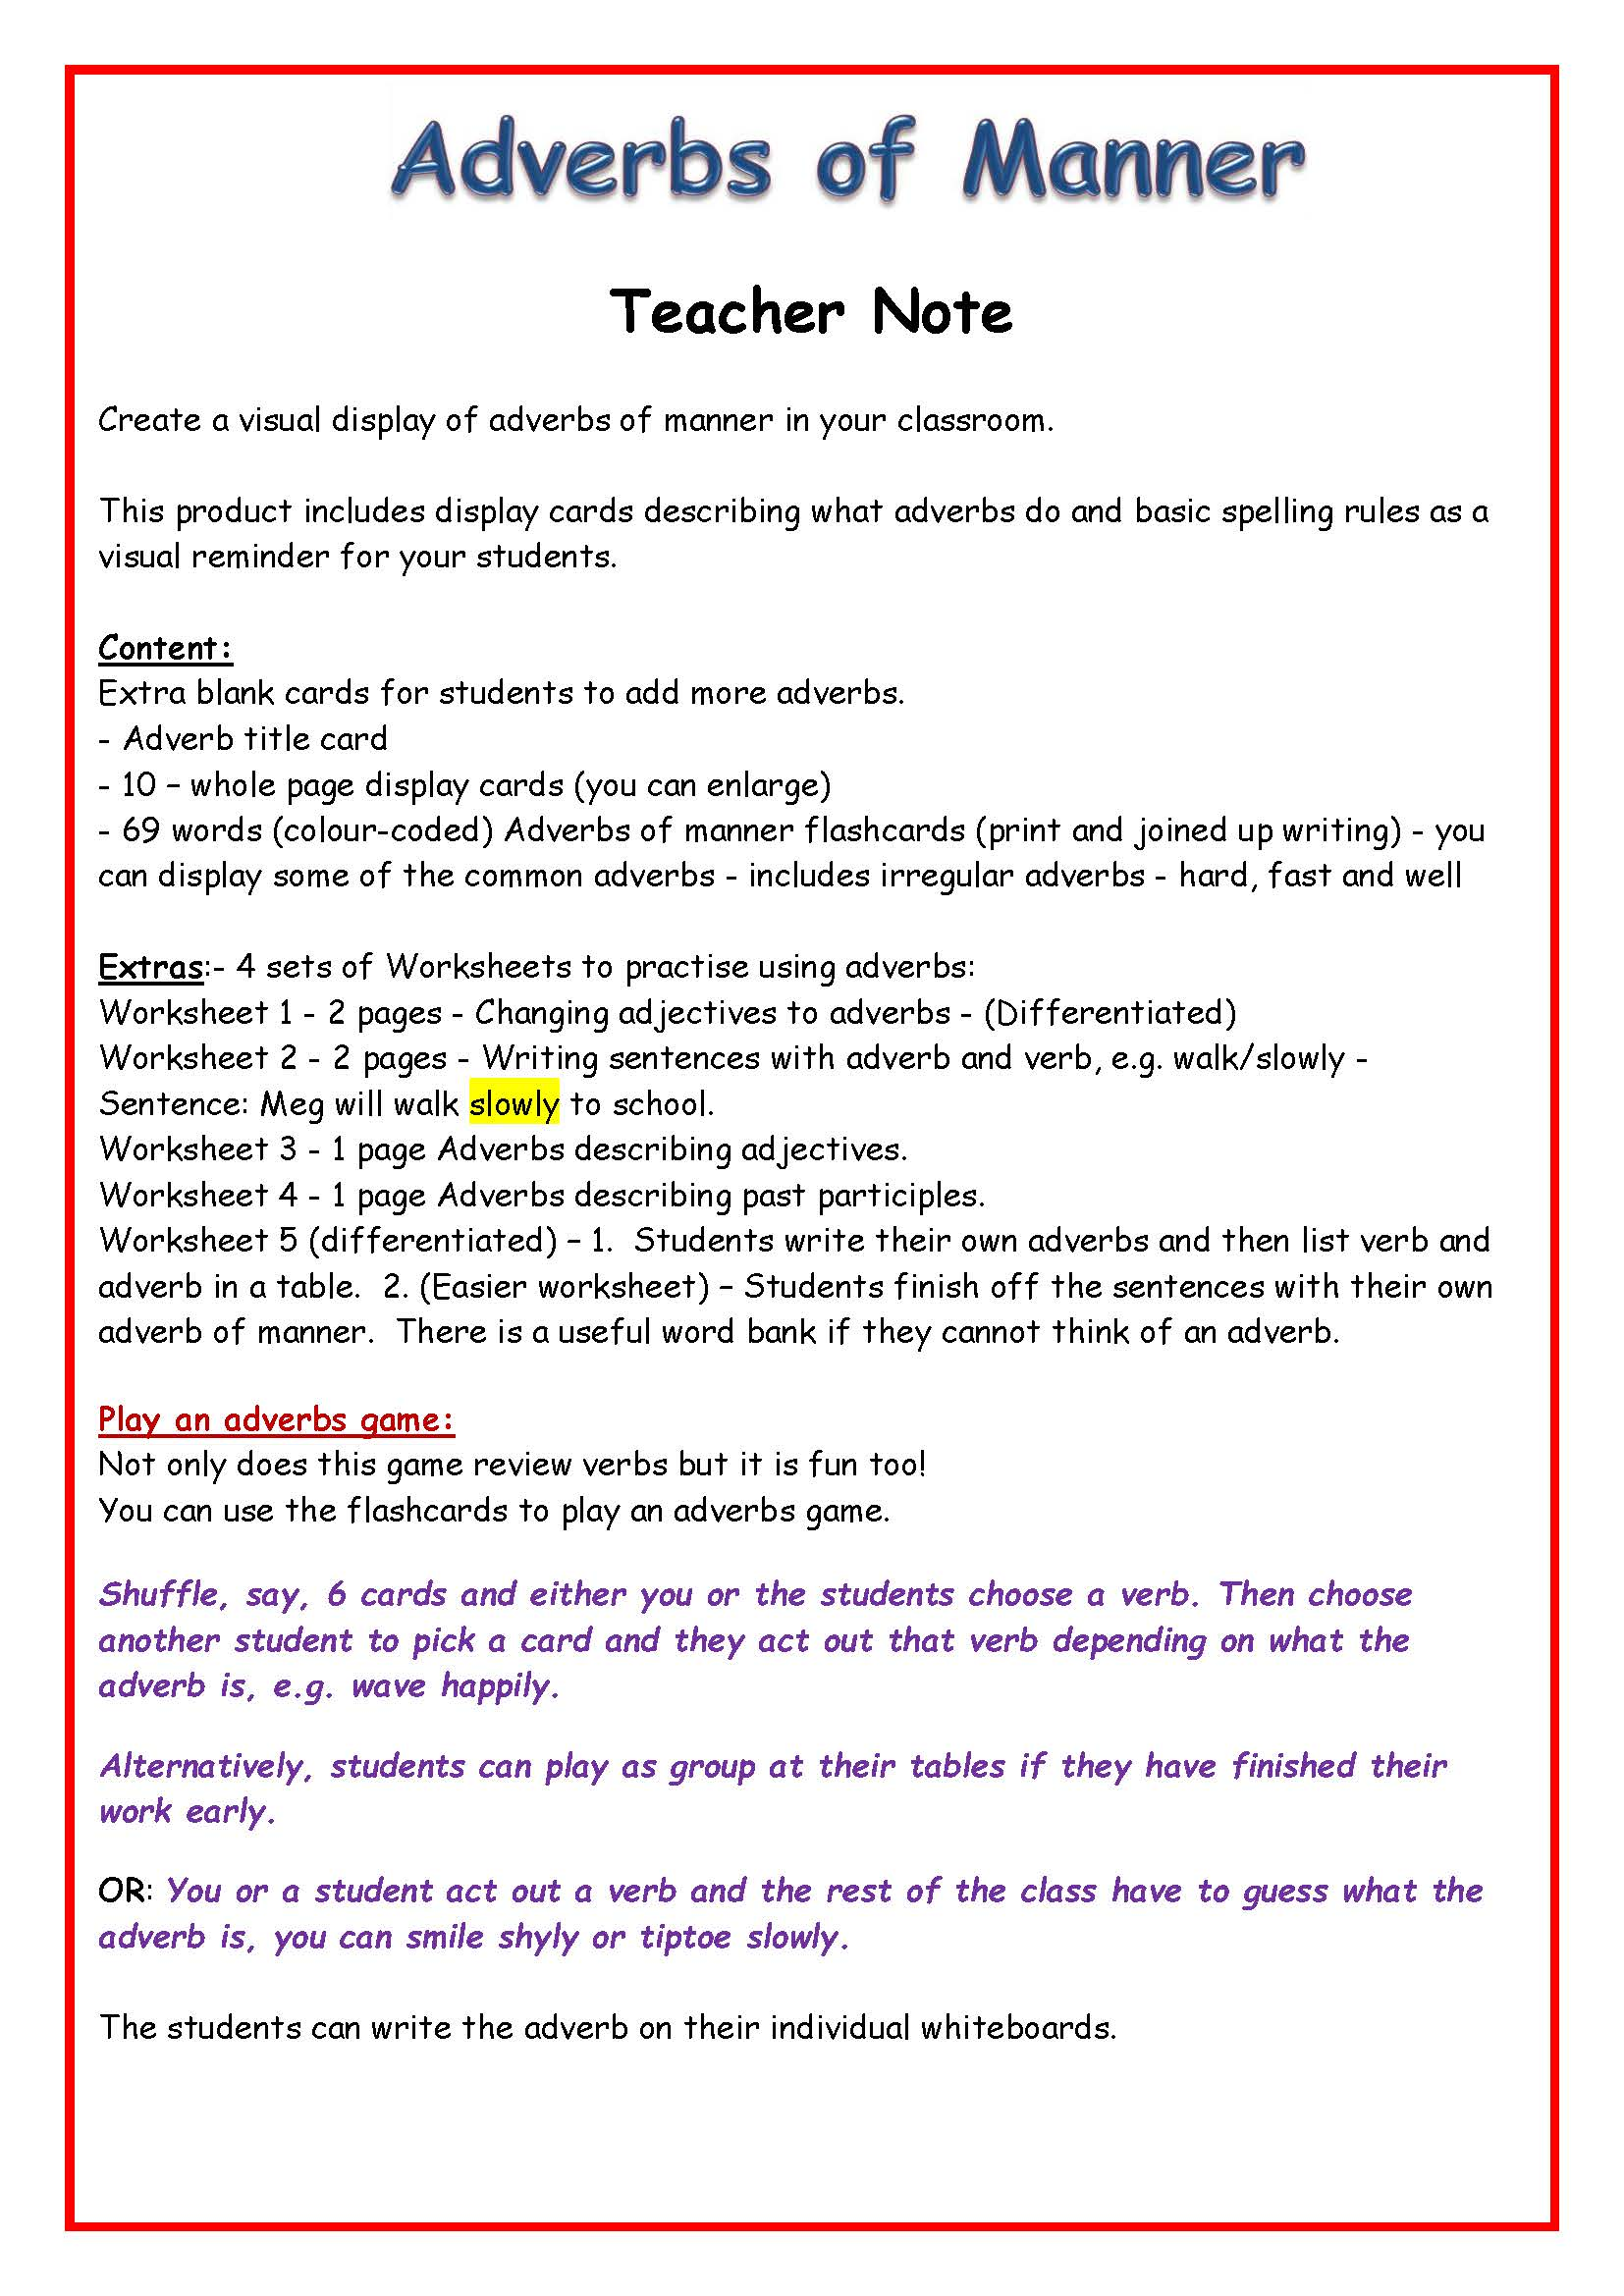 Adverbs And Adverbials Bundle Adverbs Of Manner Time Frequency Place Degree Worksheets Posters Flashcards Vocabulary Grammar Teaching Resources